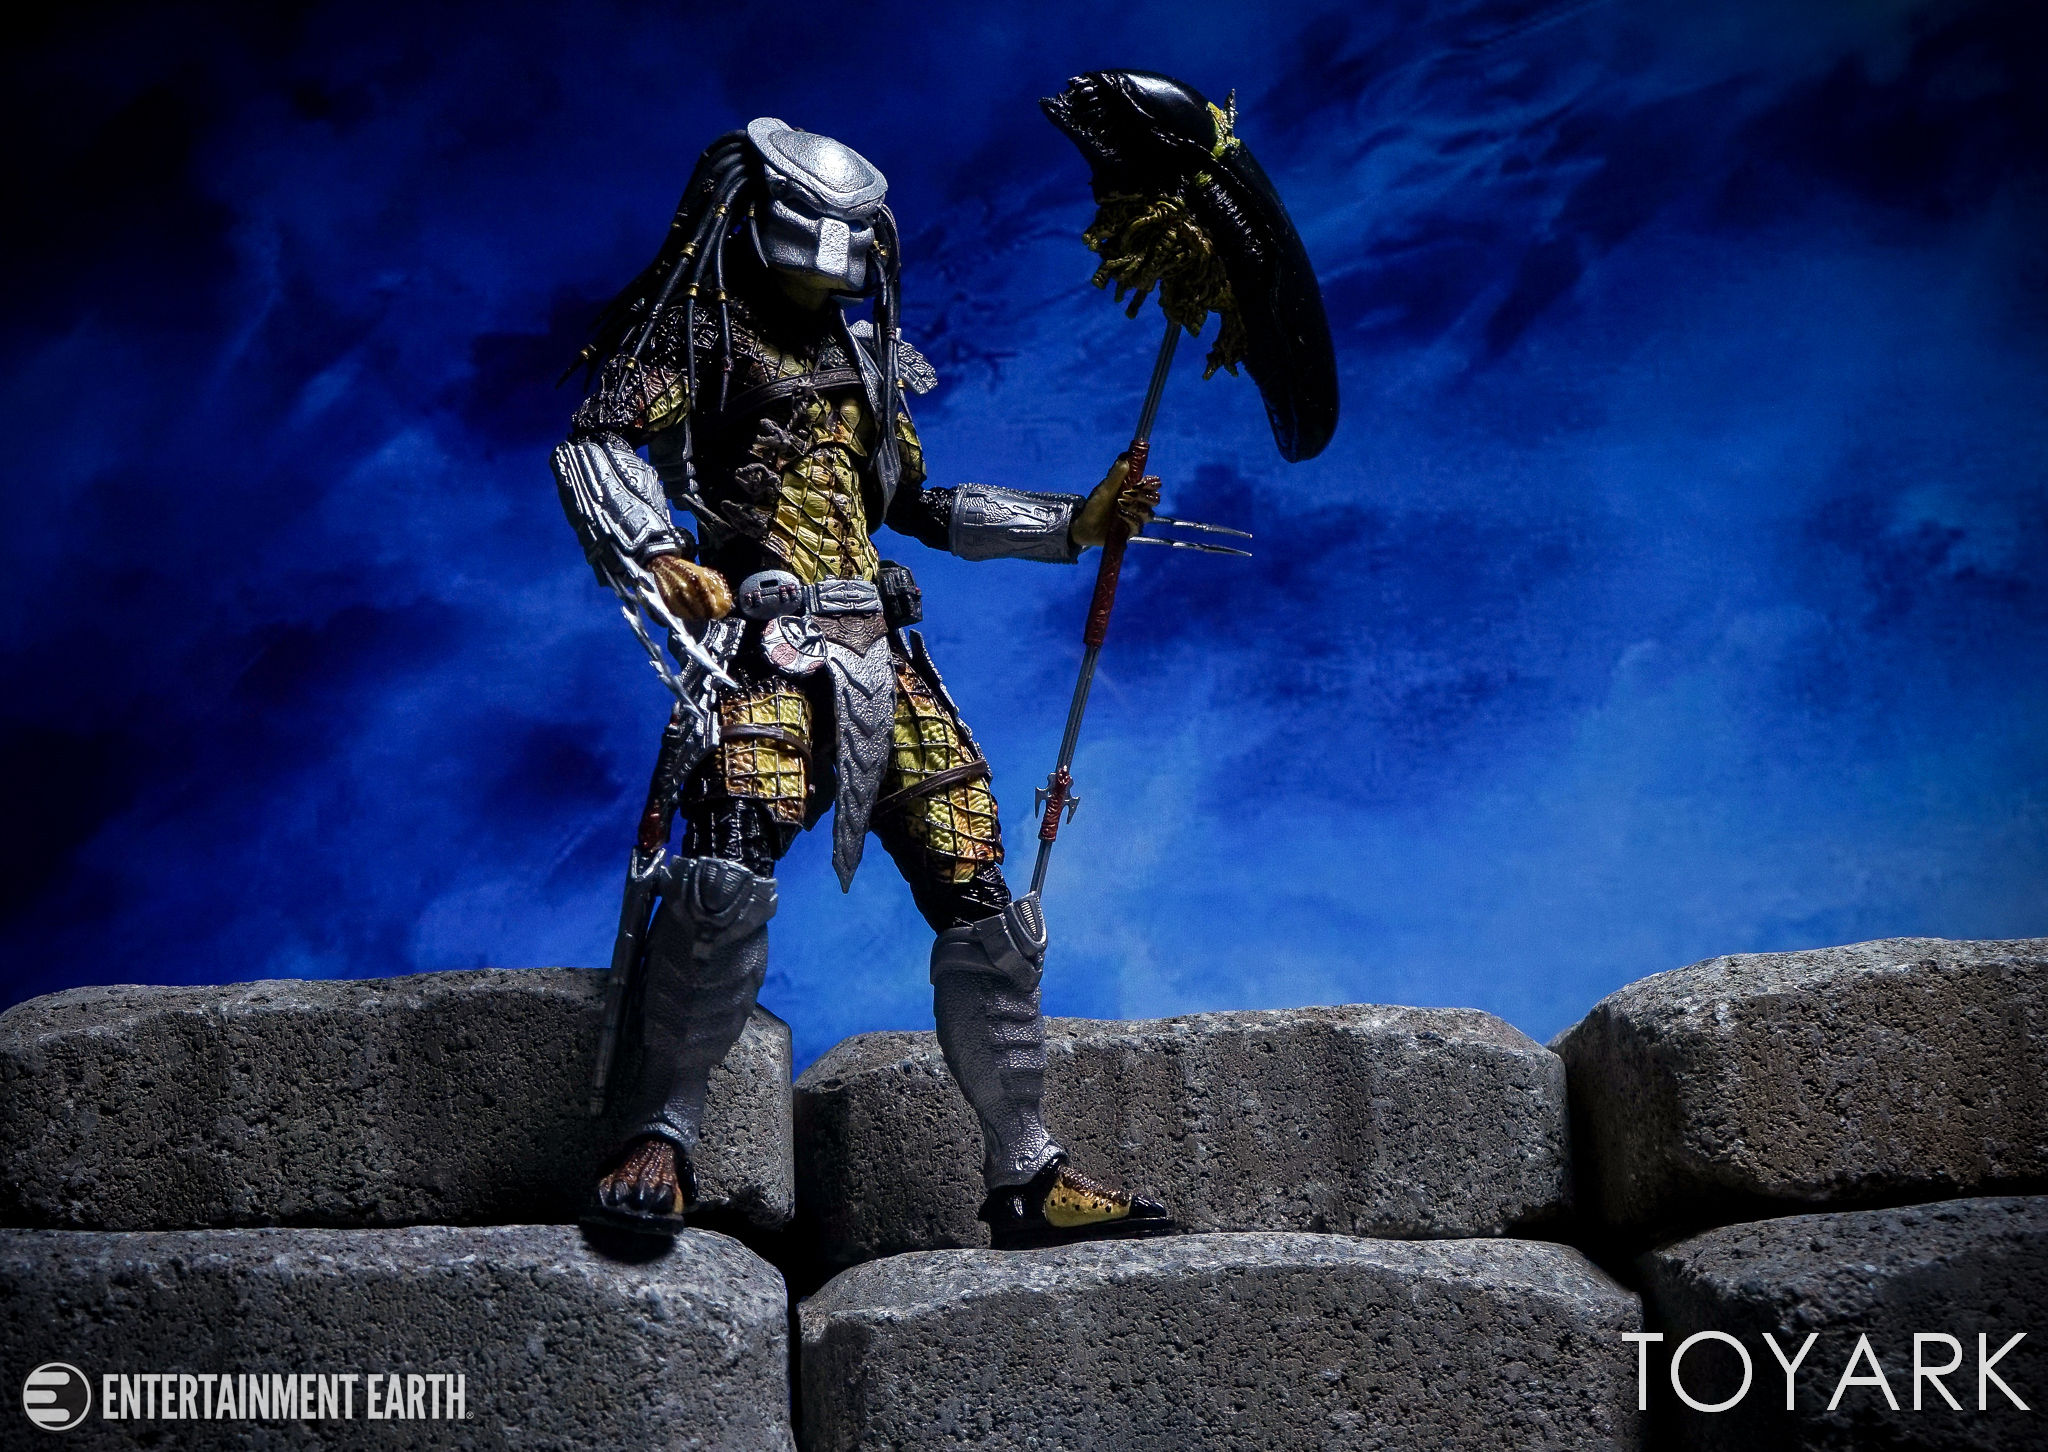 http://news.toyark.com/wp-content/uploads/sites/4/2017/04/NECA-Youngblood-Predator-041.jpg